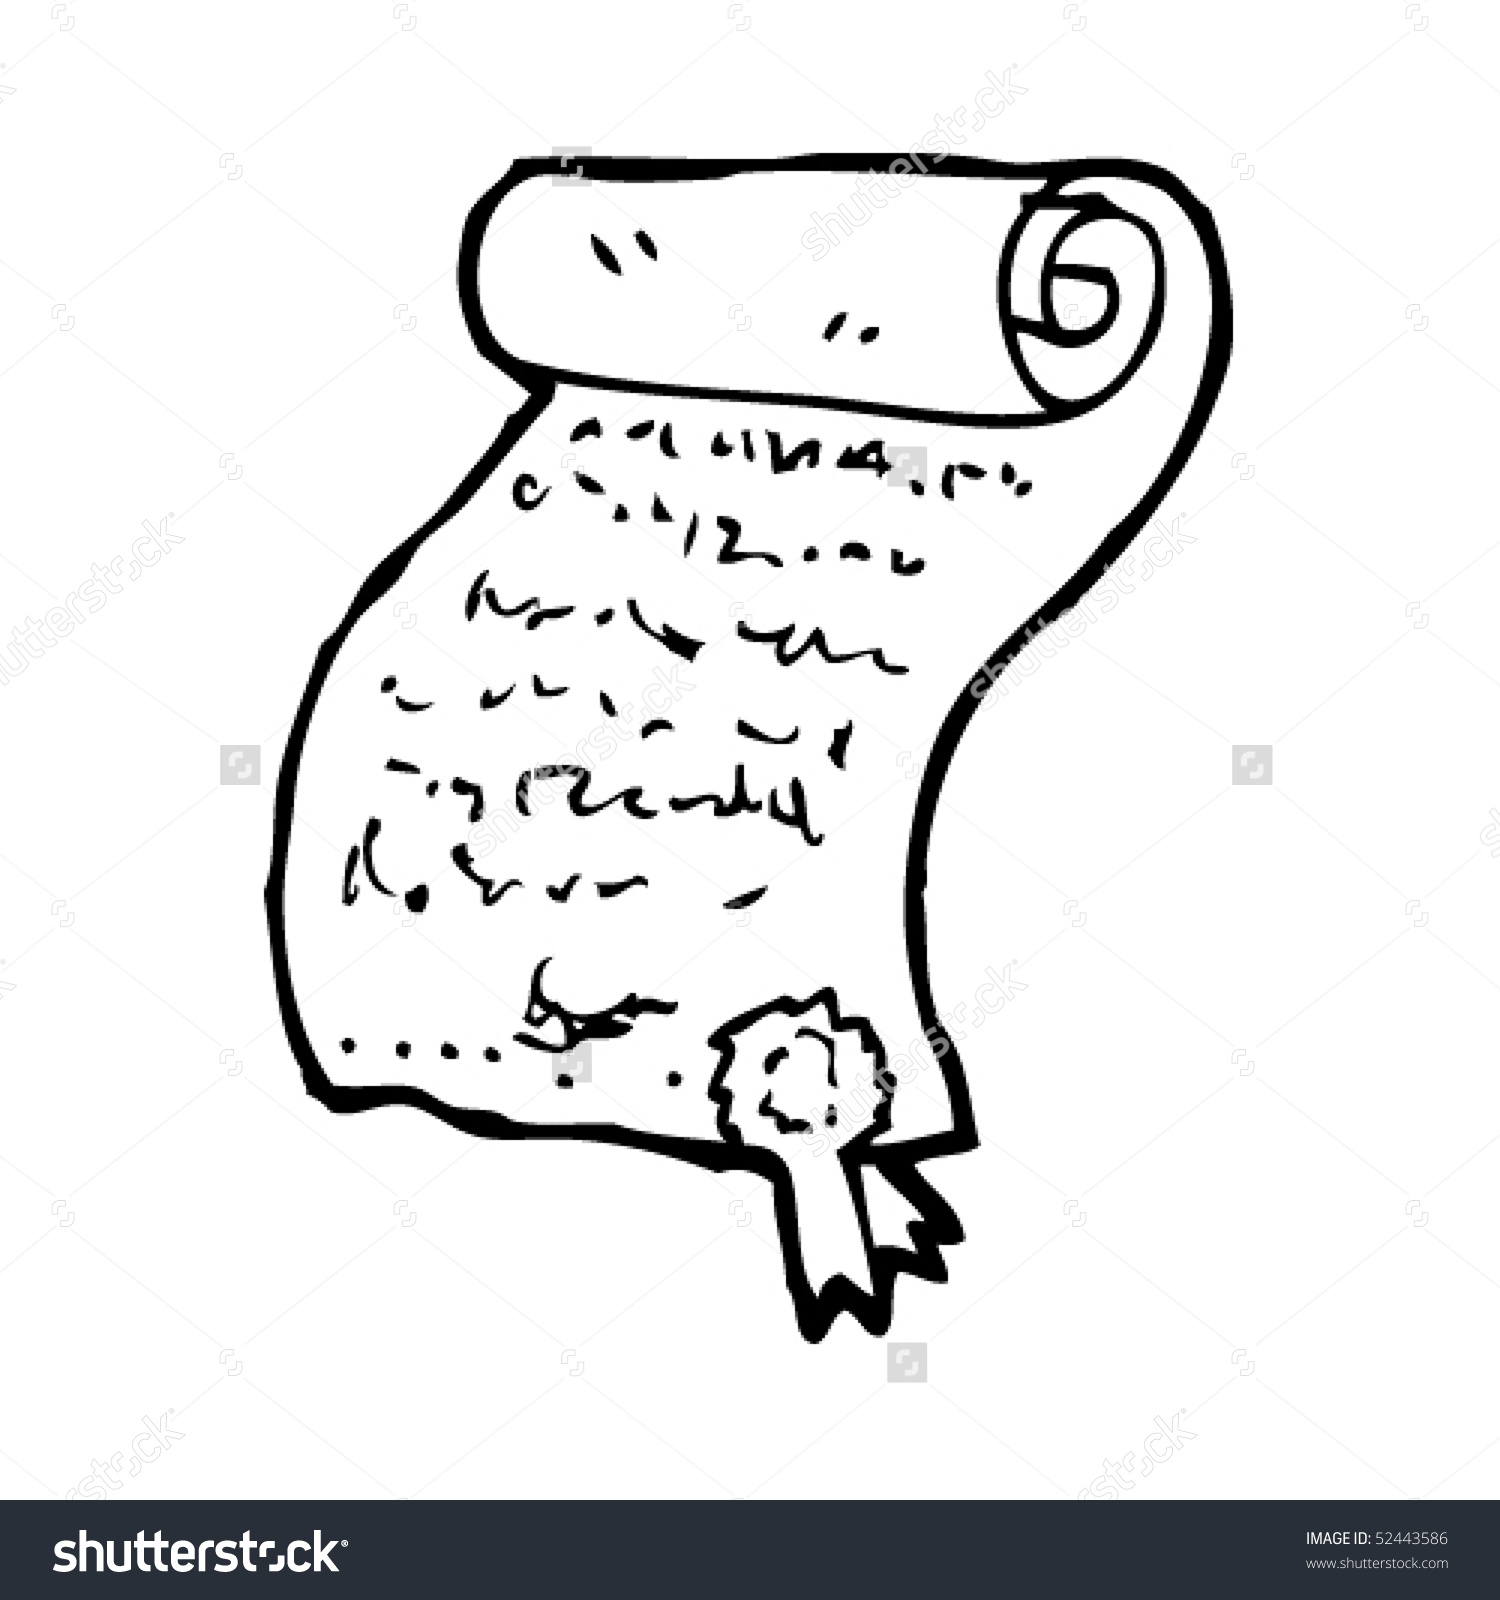 Declaration Of Independence clipart scroll Of Declaration collection Declaration clipart